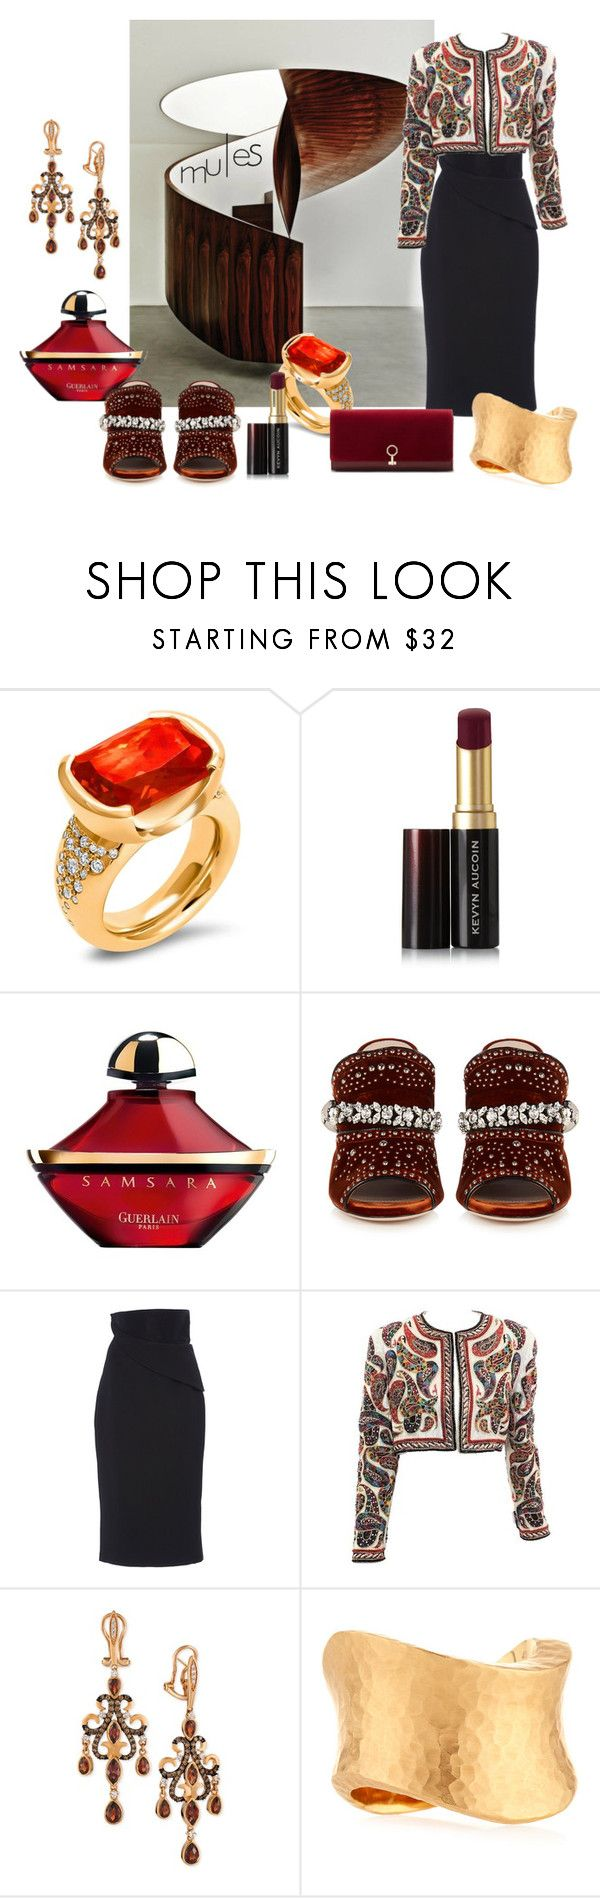 """CASEY"" by pursue-happiness ❤ liked on Polyvore featuring Hargreaves Stockholm, Kevyn Aucoin, Guerlain, Miu Miu, Brandon Maxwell, Bill Blass, LE VIAN, Vendorafa and Louise et Cie"